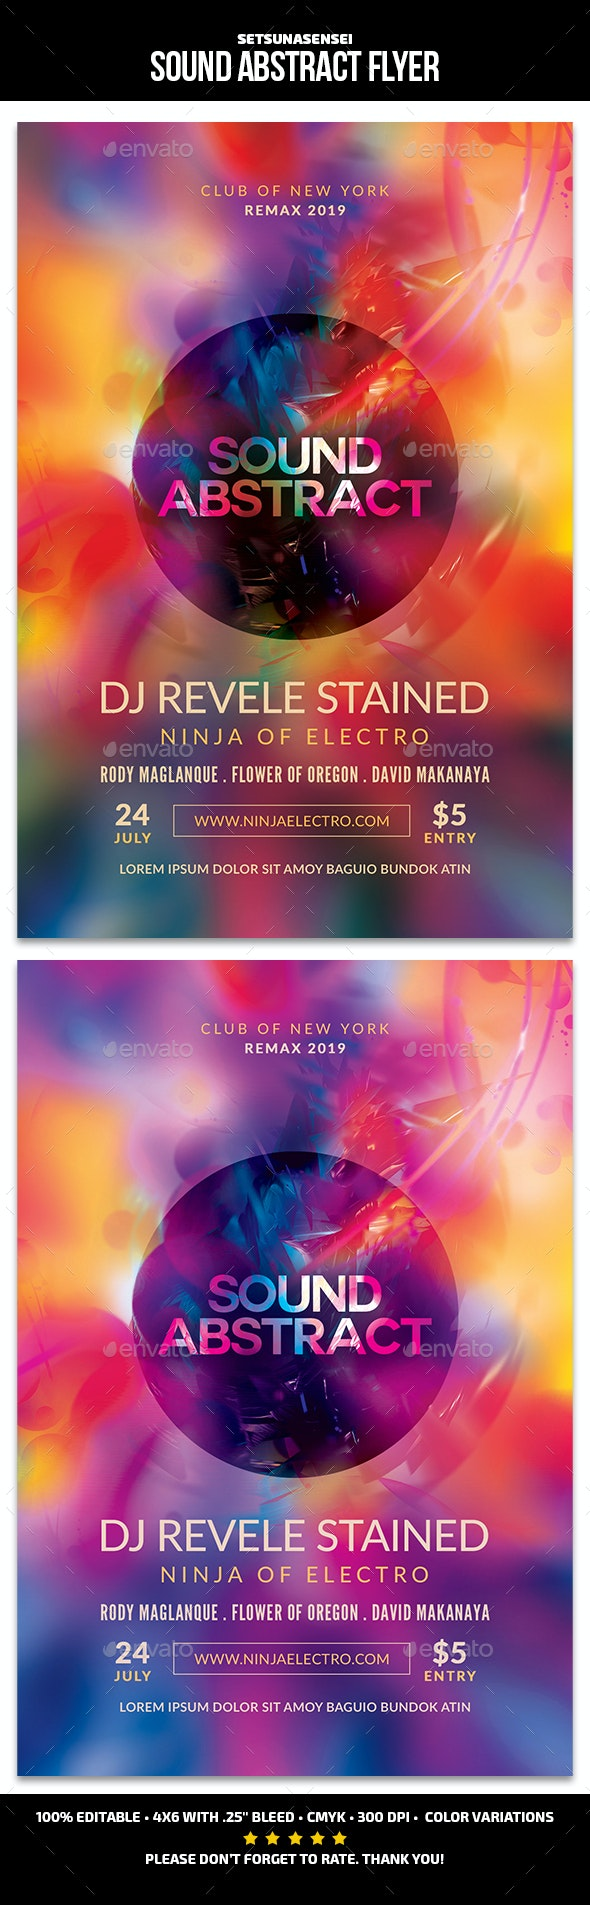 Sound Abstract Flyer - Events Flyers